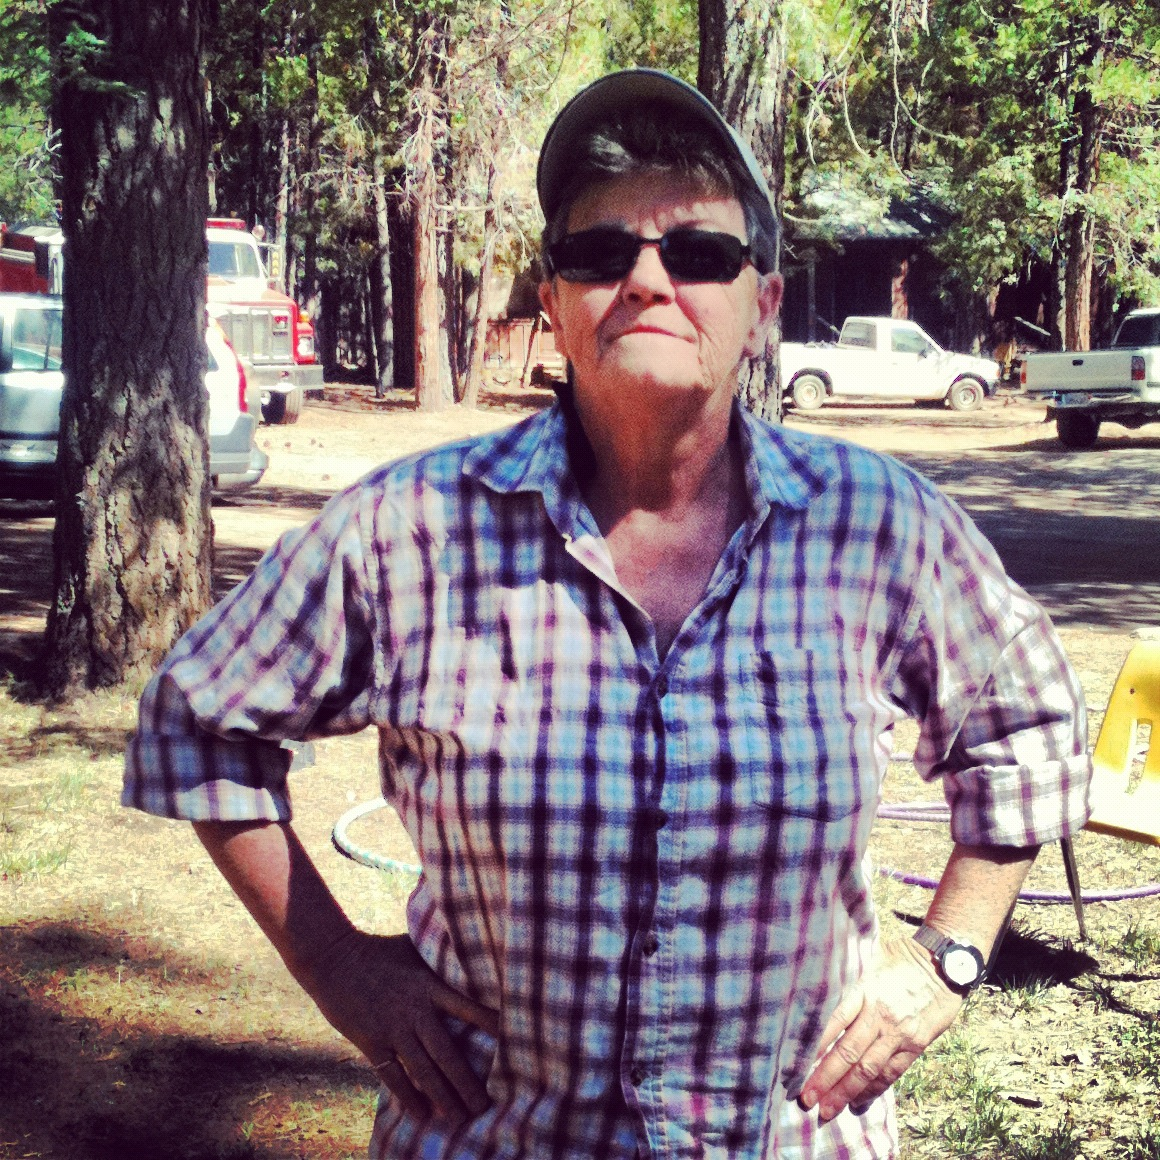 butch sightings: a social interaction: #242 karen camps it up!